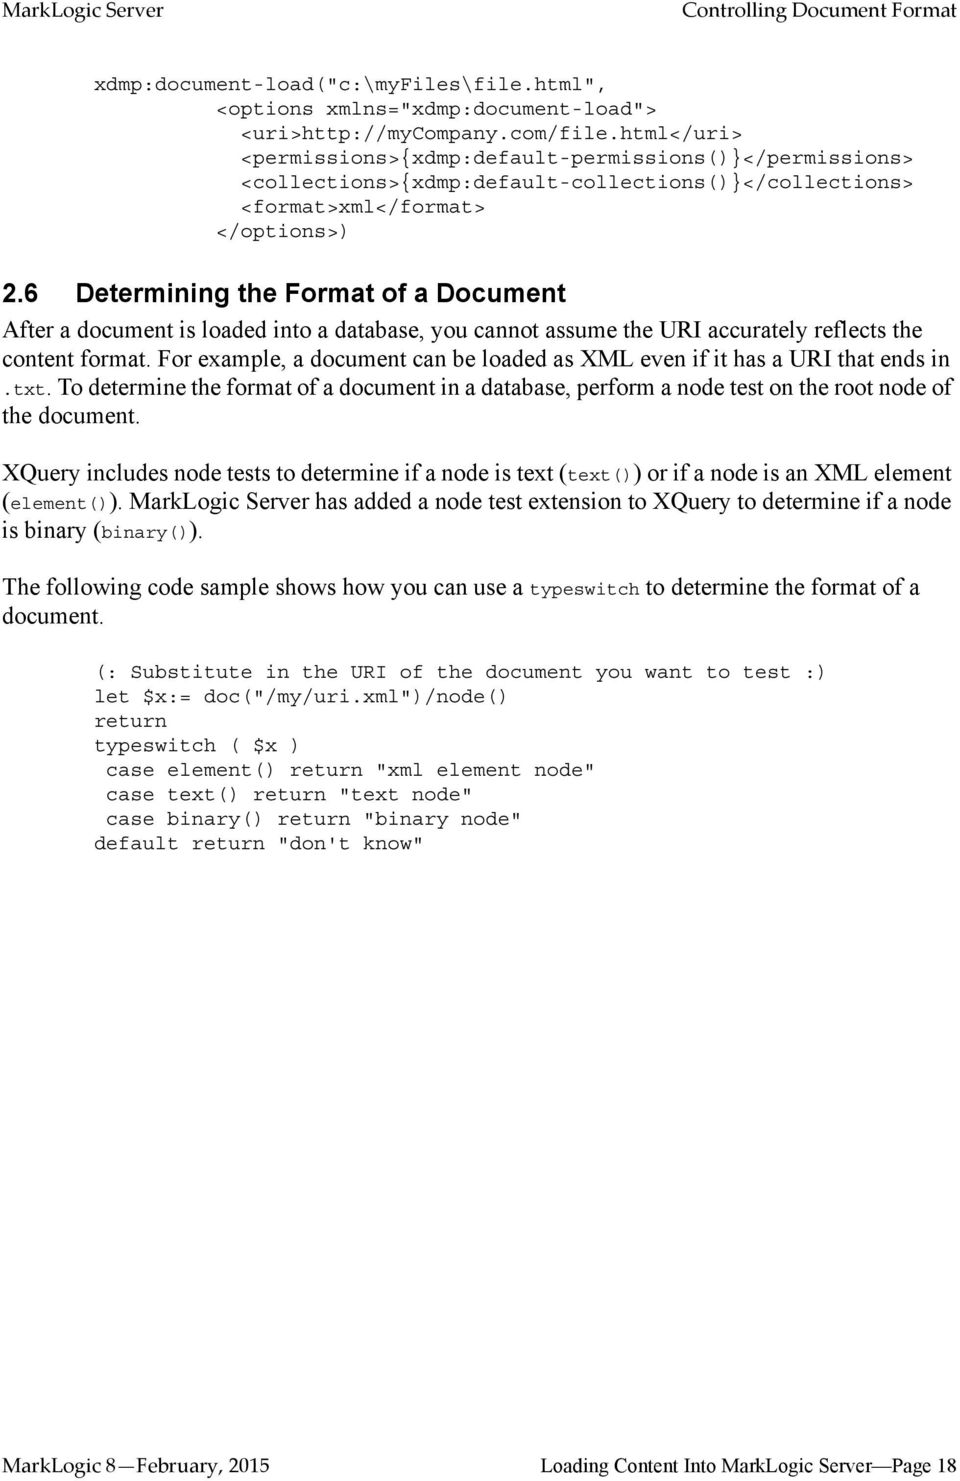 6 Determining the Format of a Document After a document is loaded into a database, you cannot assume the URI accurately reflects the content format.